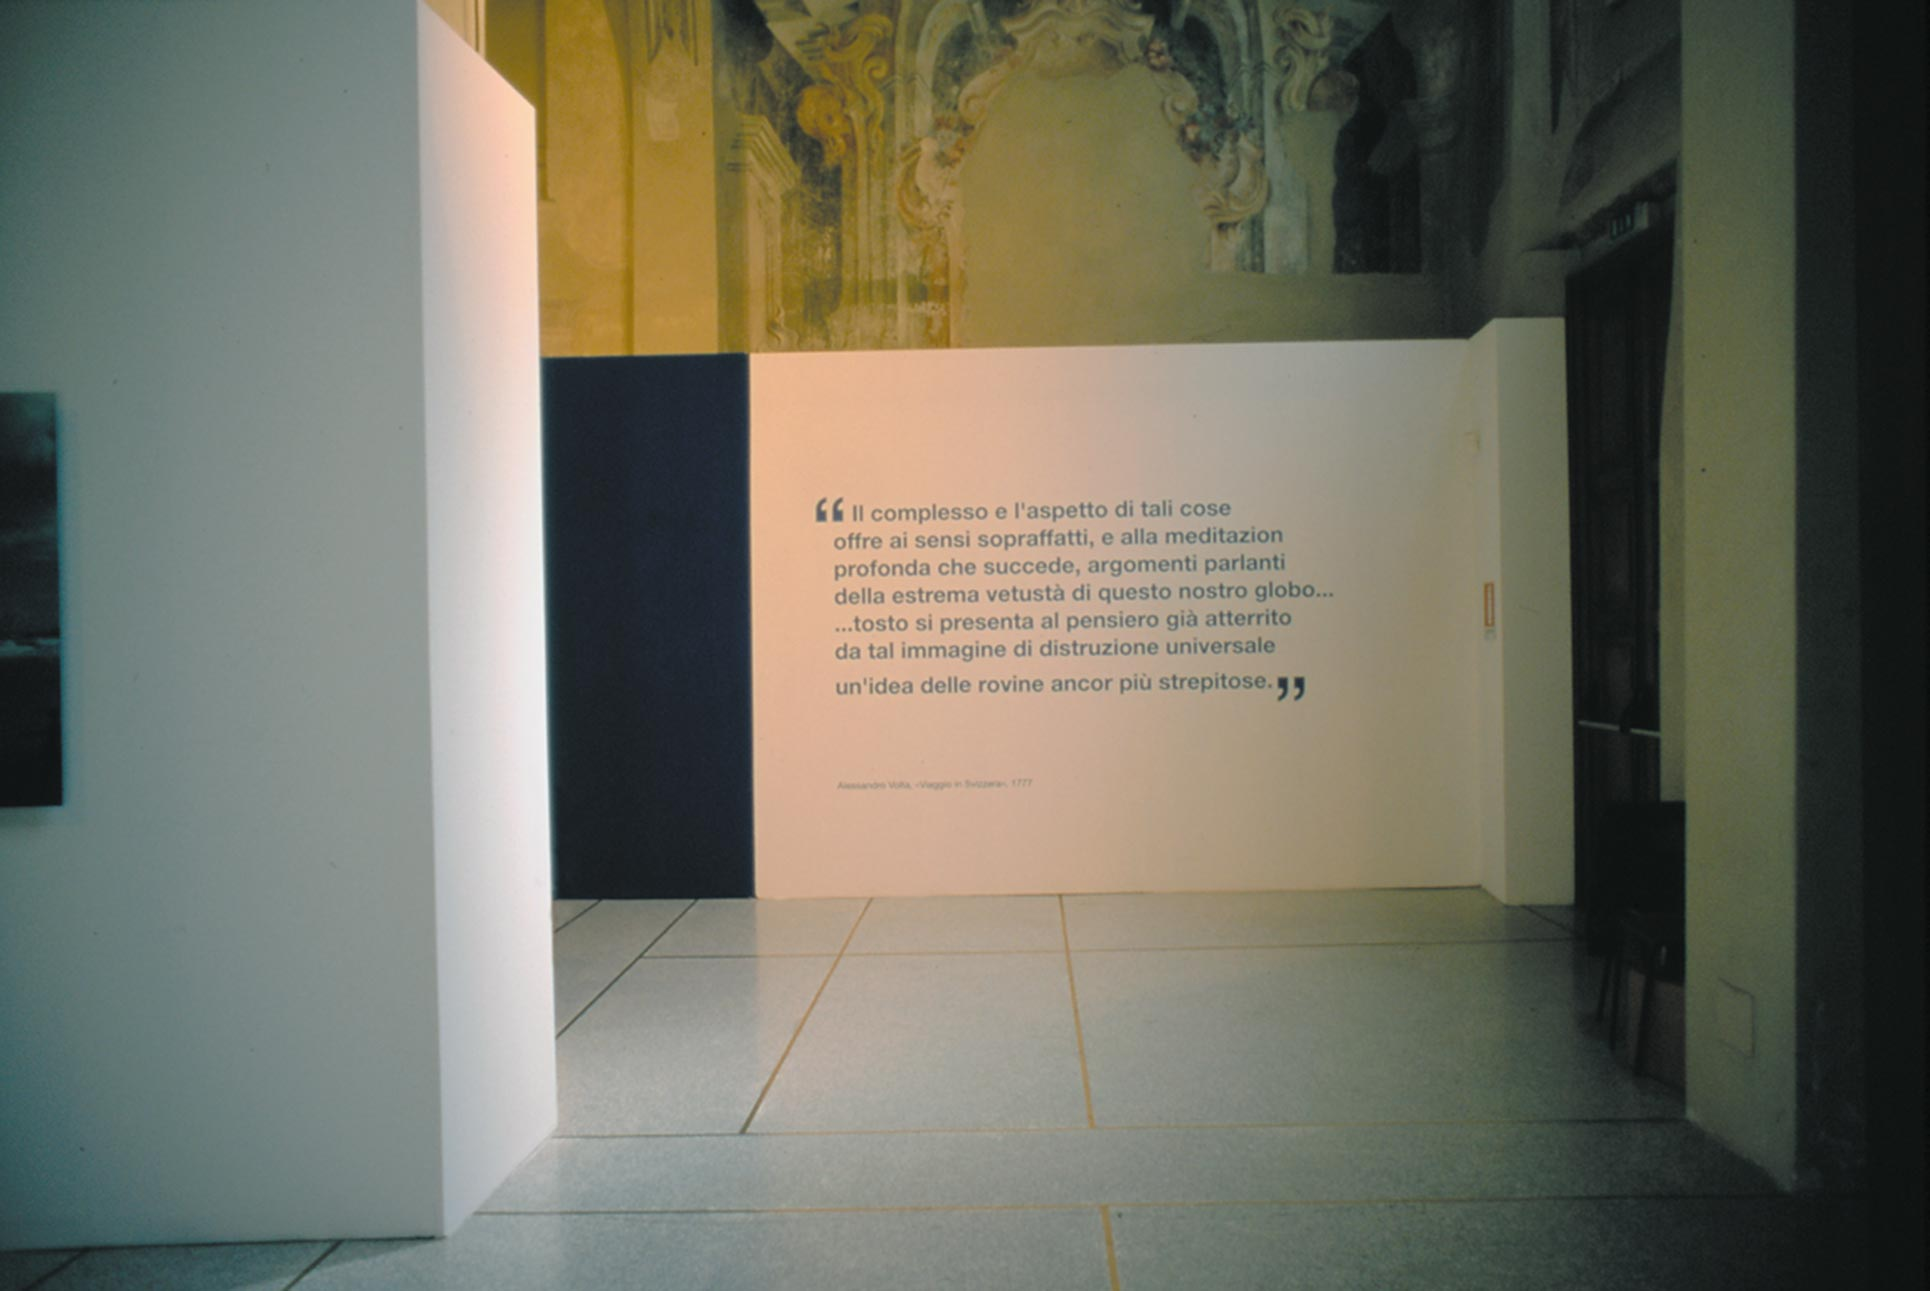 Exhibition view, San Pietro in Atrio Como, installation with wall painting and sentences from Alessandro Volta's diary